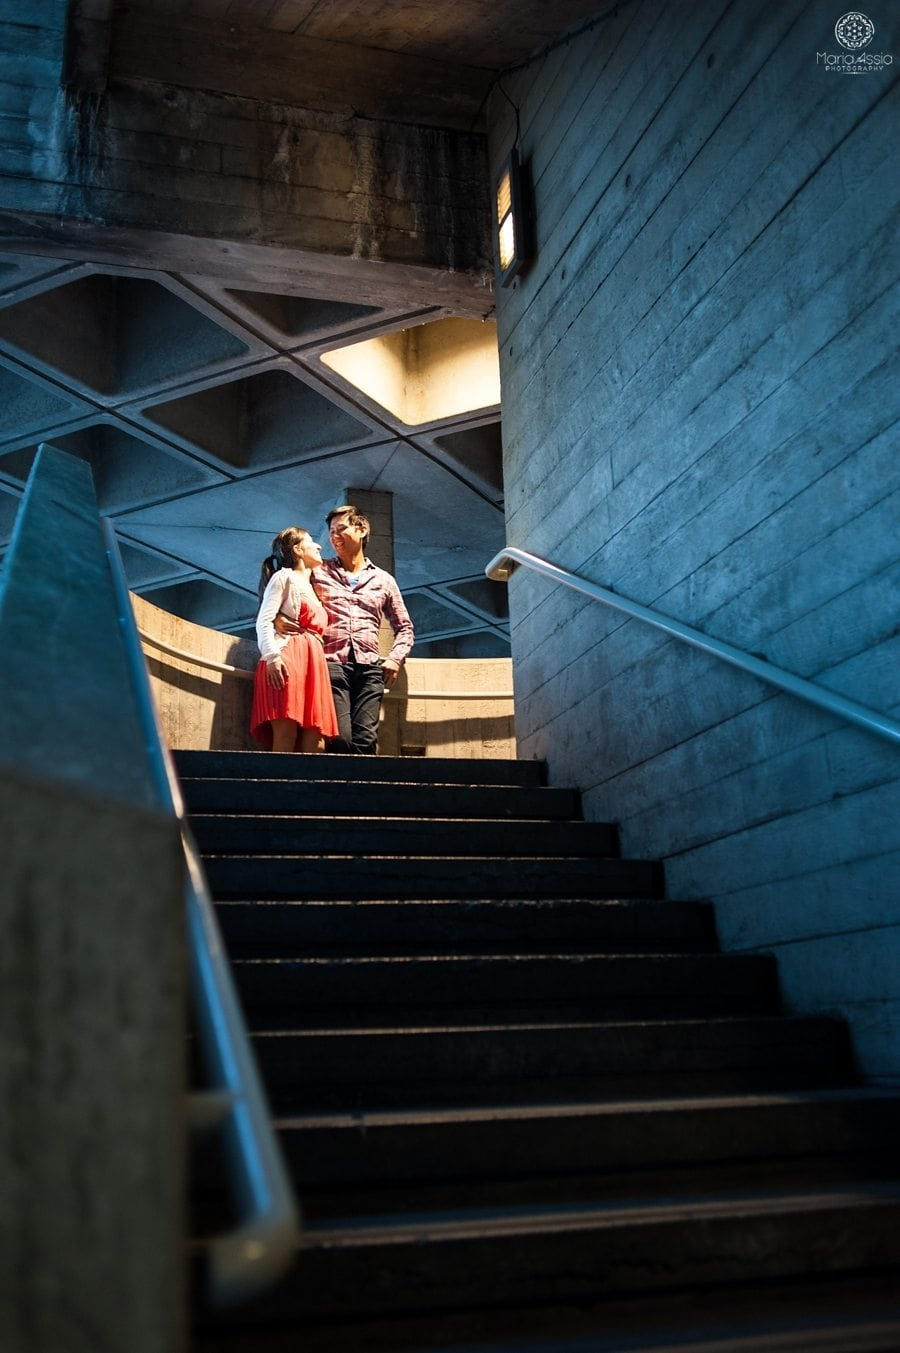 Maria Assia Photography captures a Southbank engagement shoot